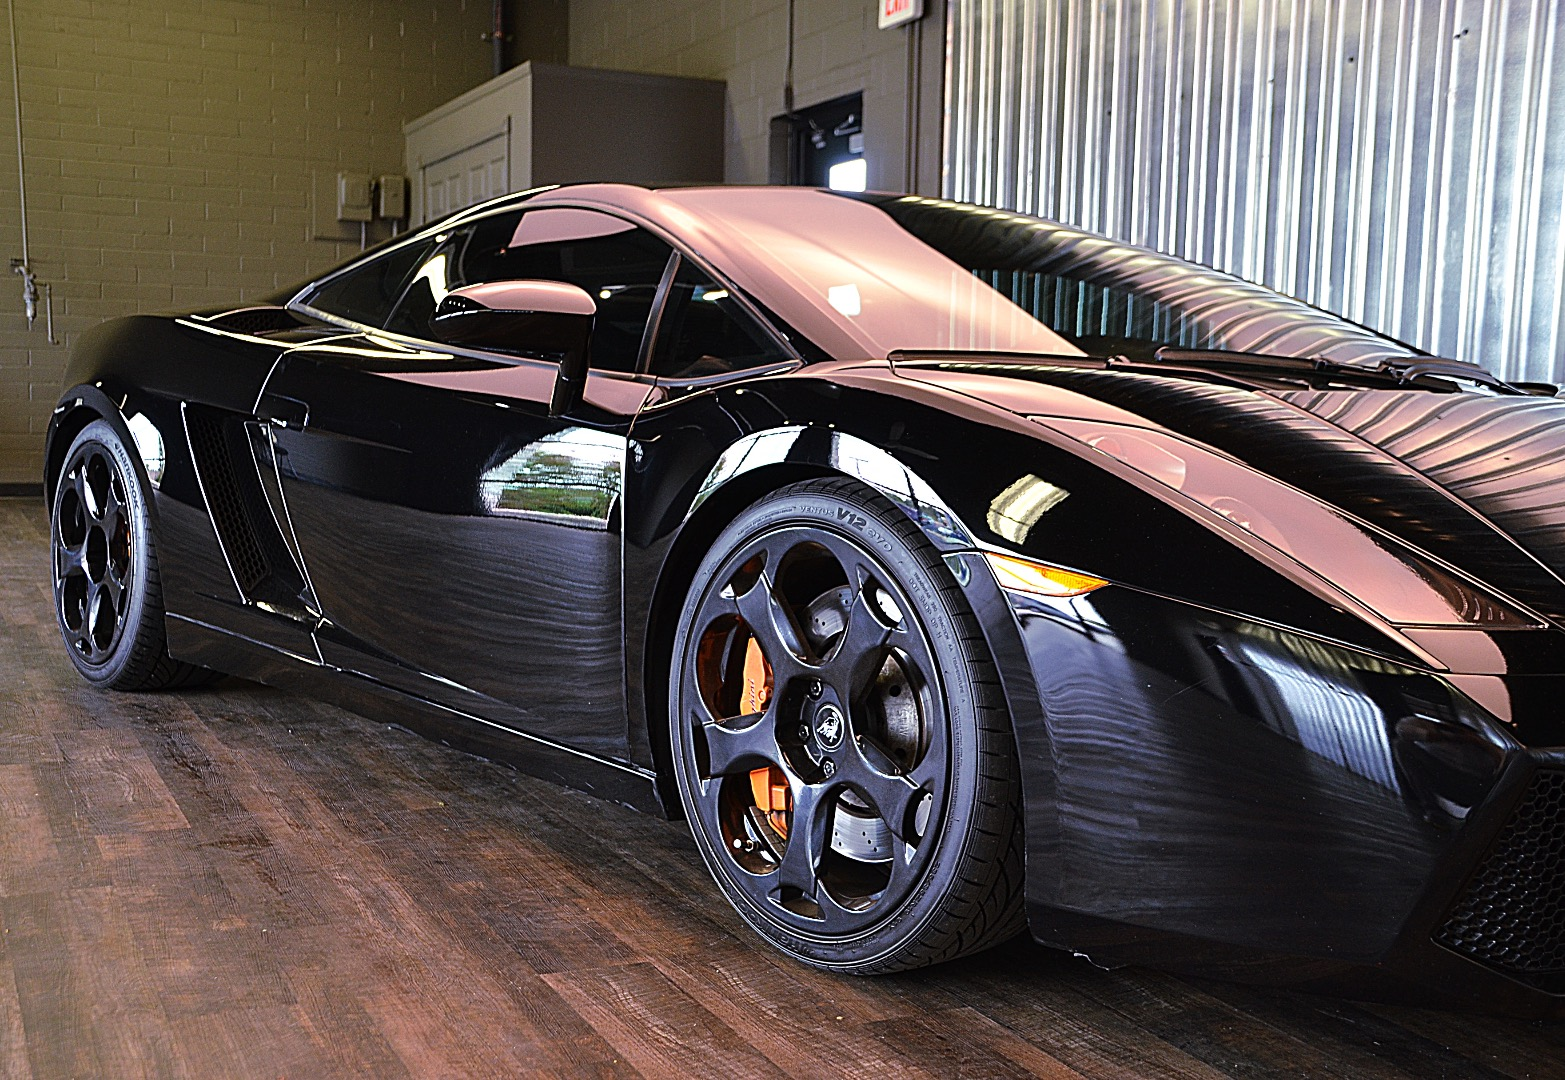 2004 lamborghini gallardo coupe for sale in medina oh. Black Bedroom Furniture Sets. Home Design Ideas